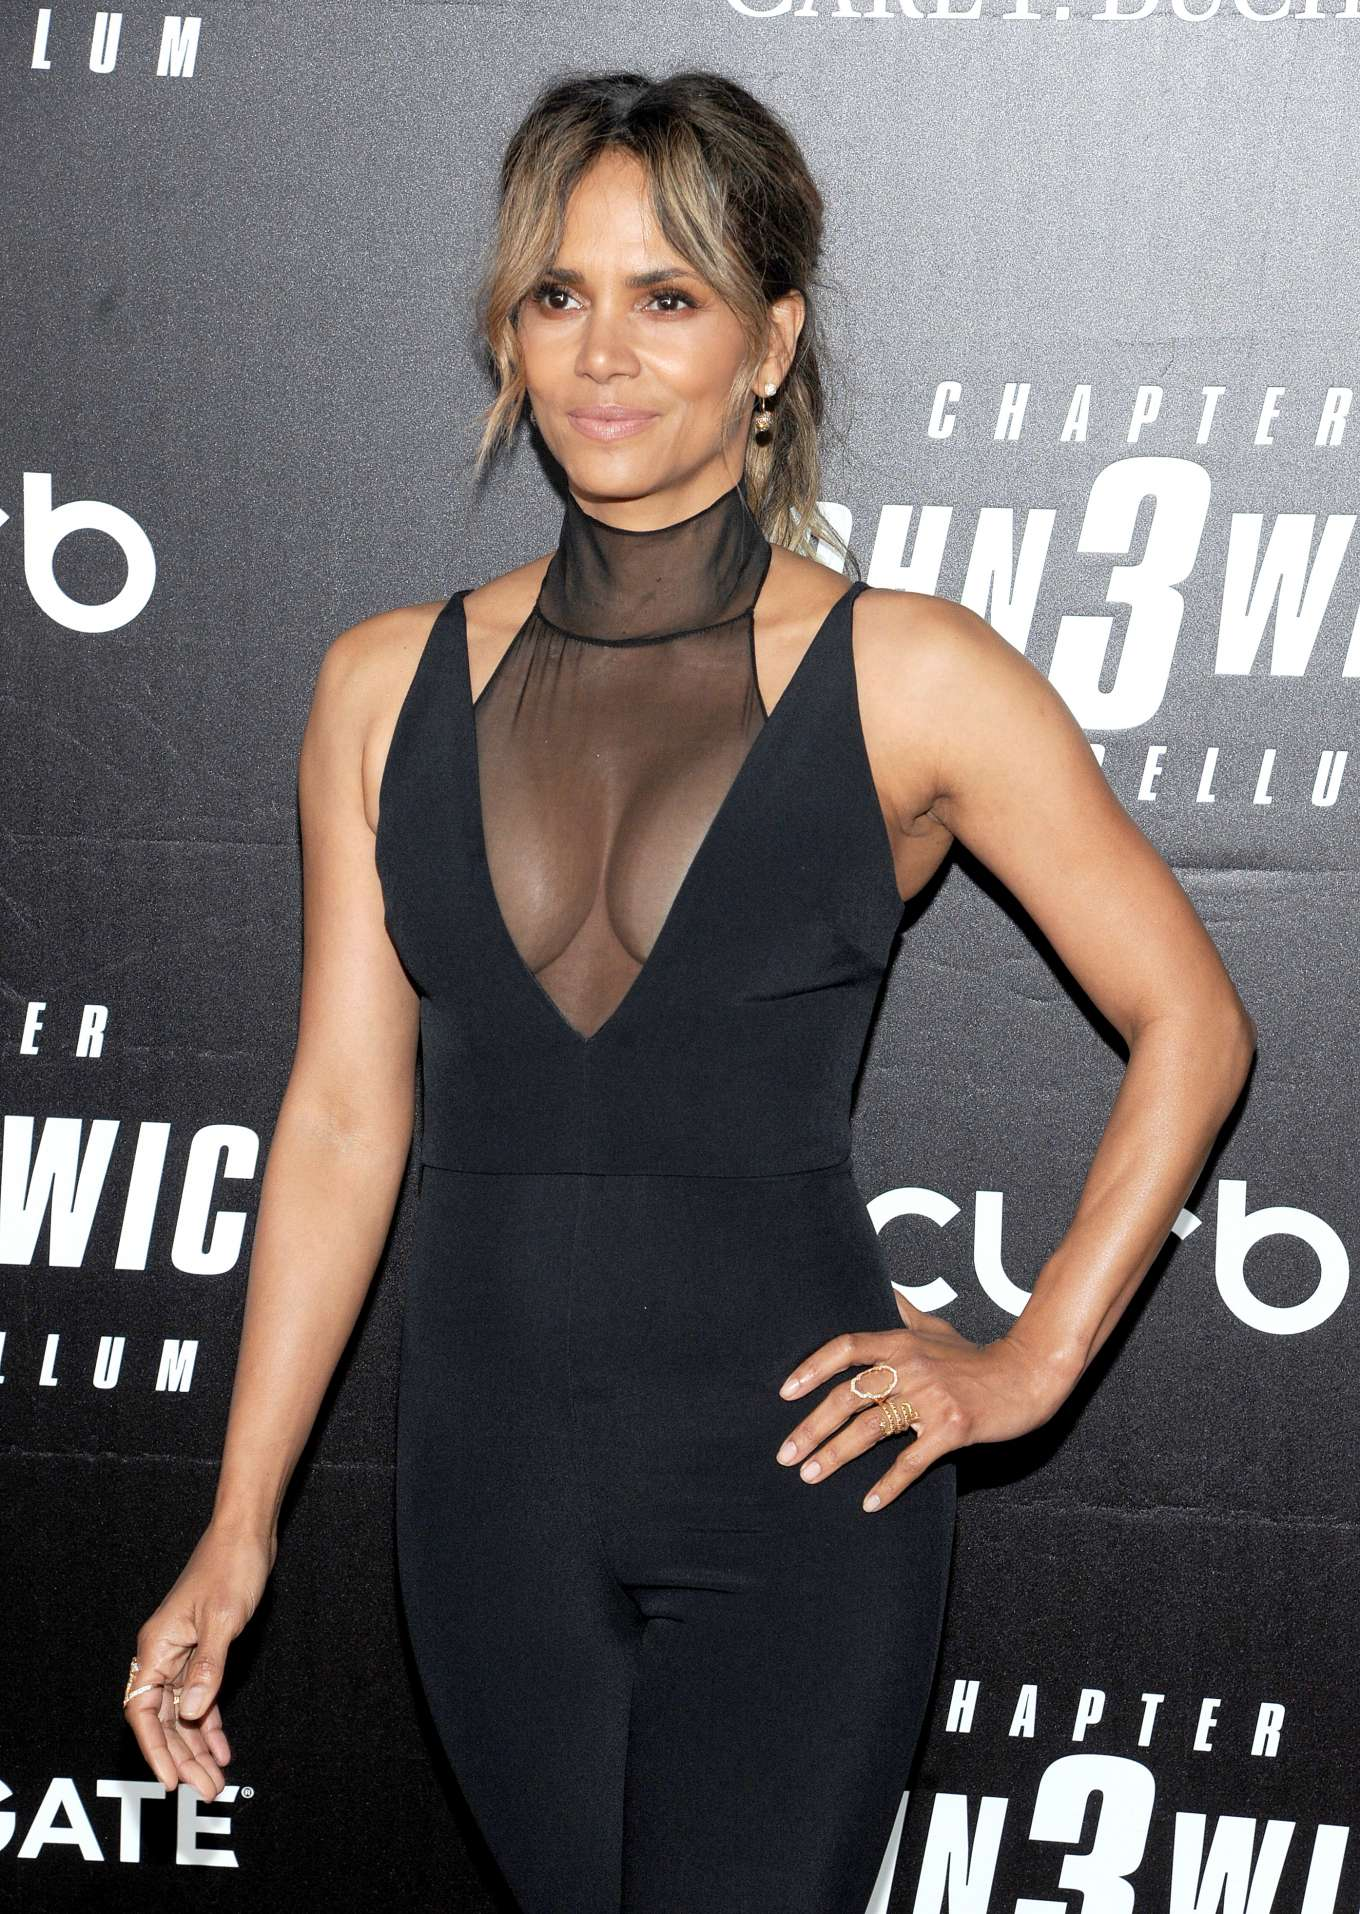 Halle Berry - 'John Wick: Chapter 3 - Parabellum' Premiere in NYC